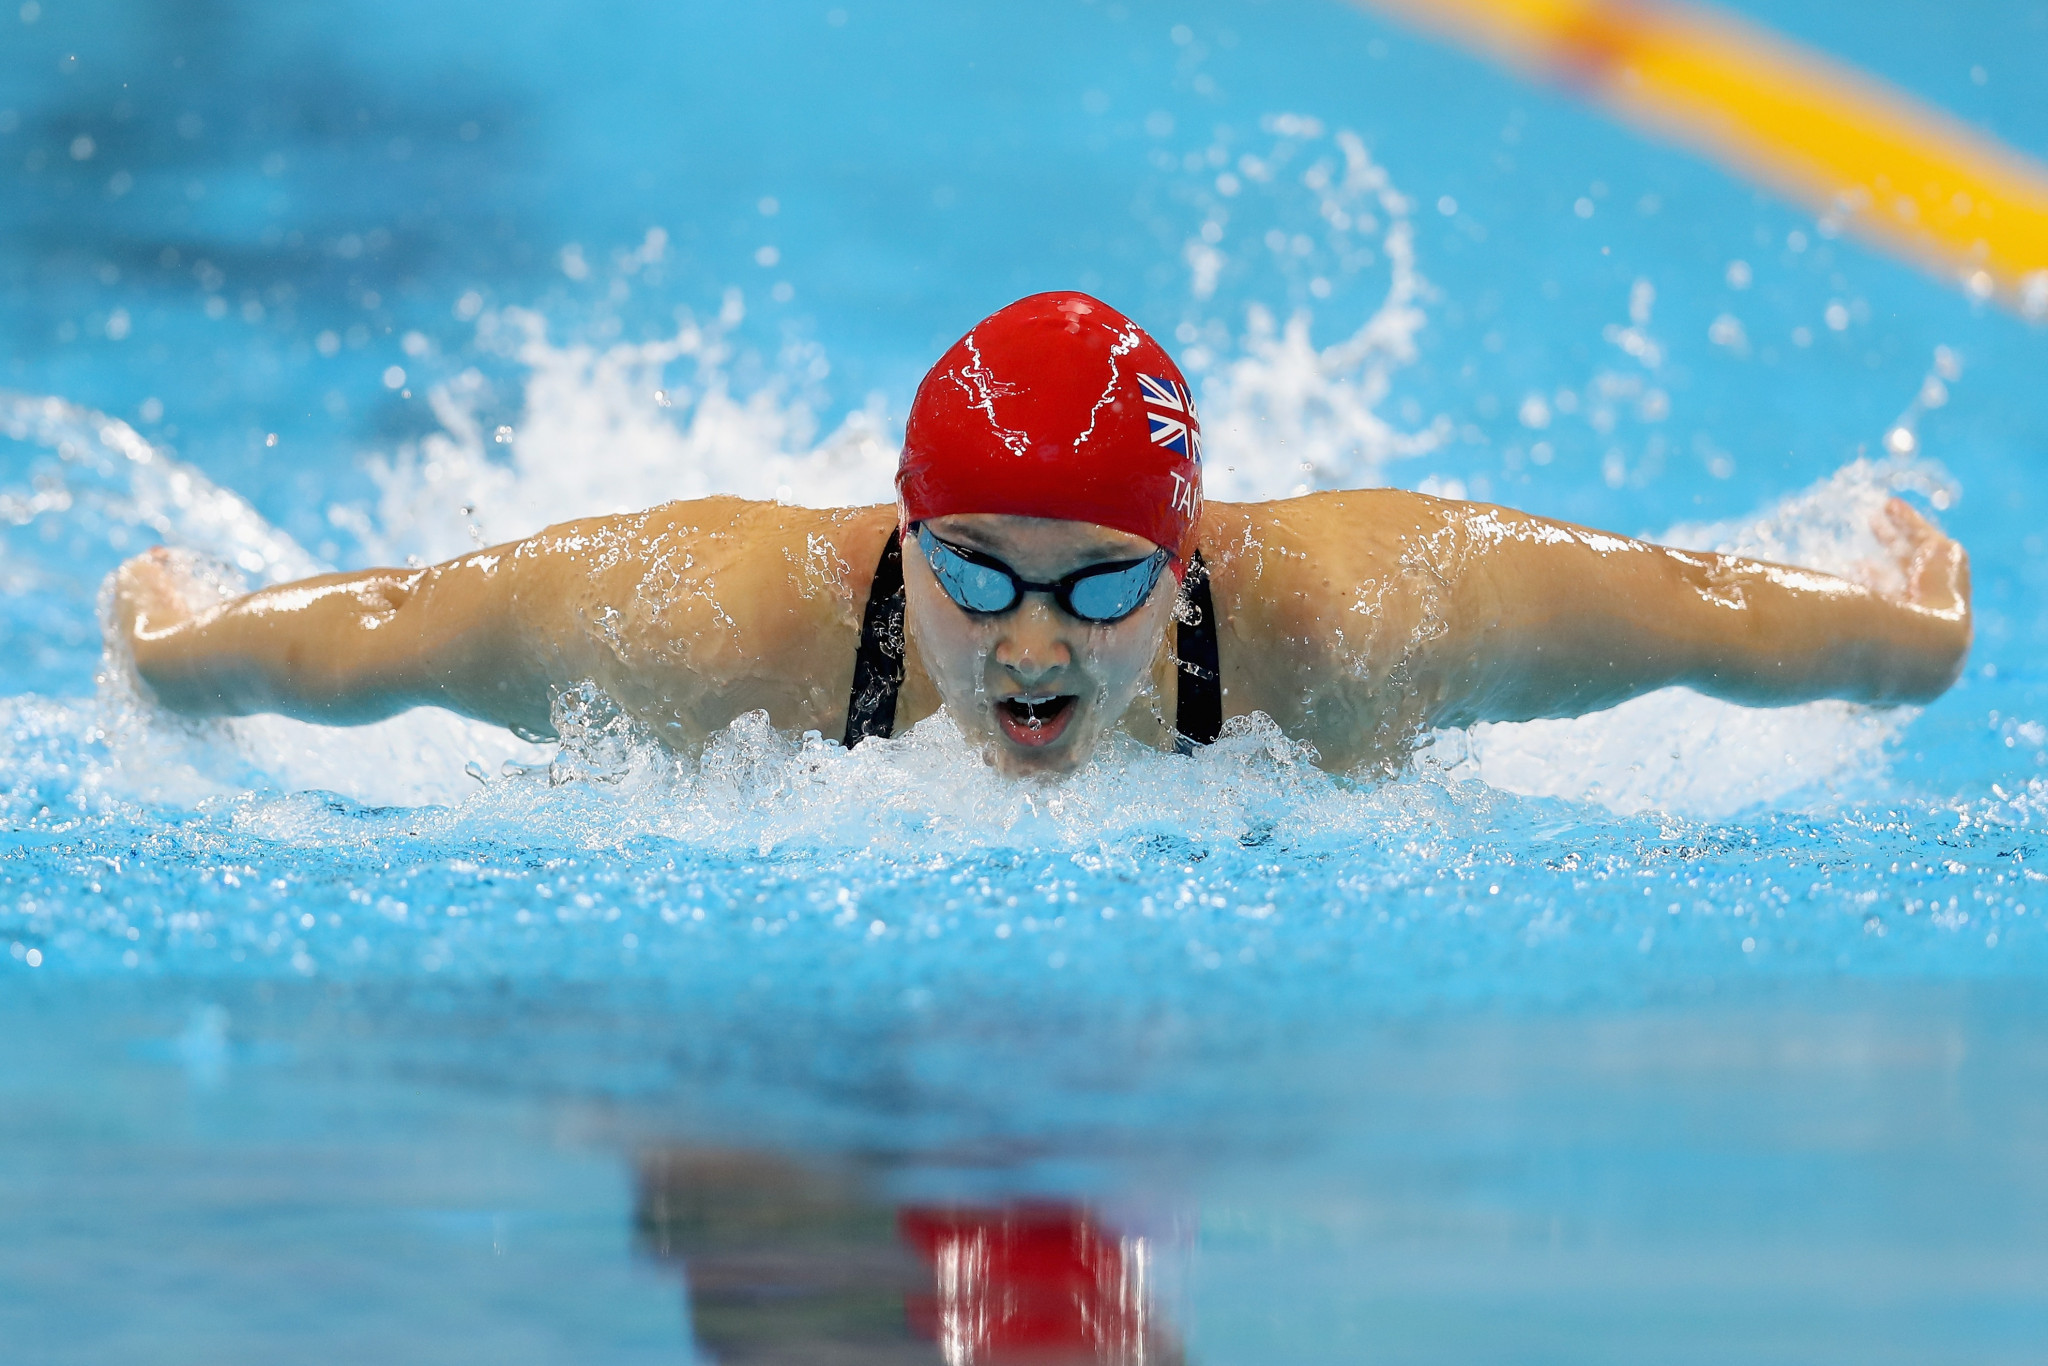 Britain's Alice Tai will hope to repeat her success at the World Para Swimming World Series in Berlin, Germany, having claimed four gold medals in Lignano Sabbiadoro last week ©Paralympics GB